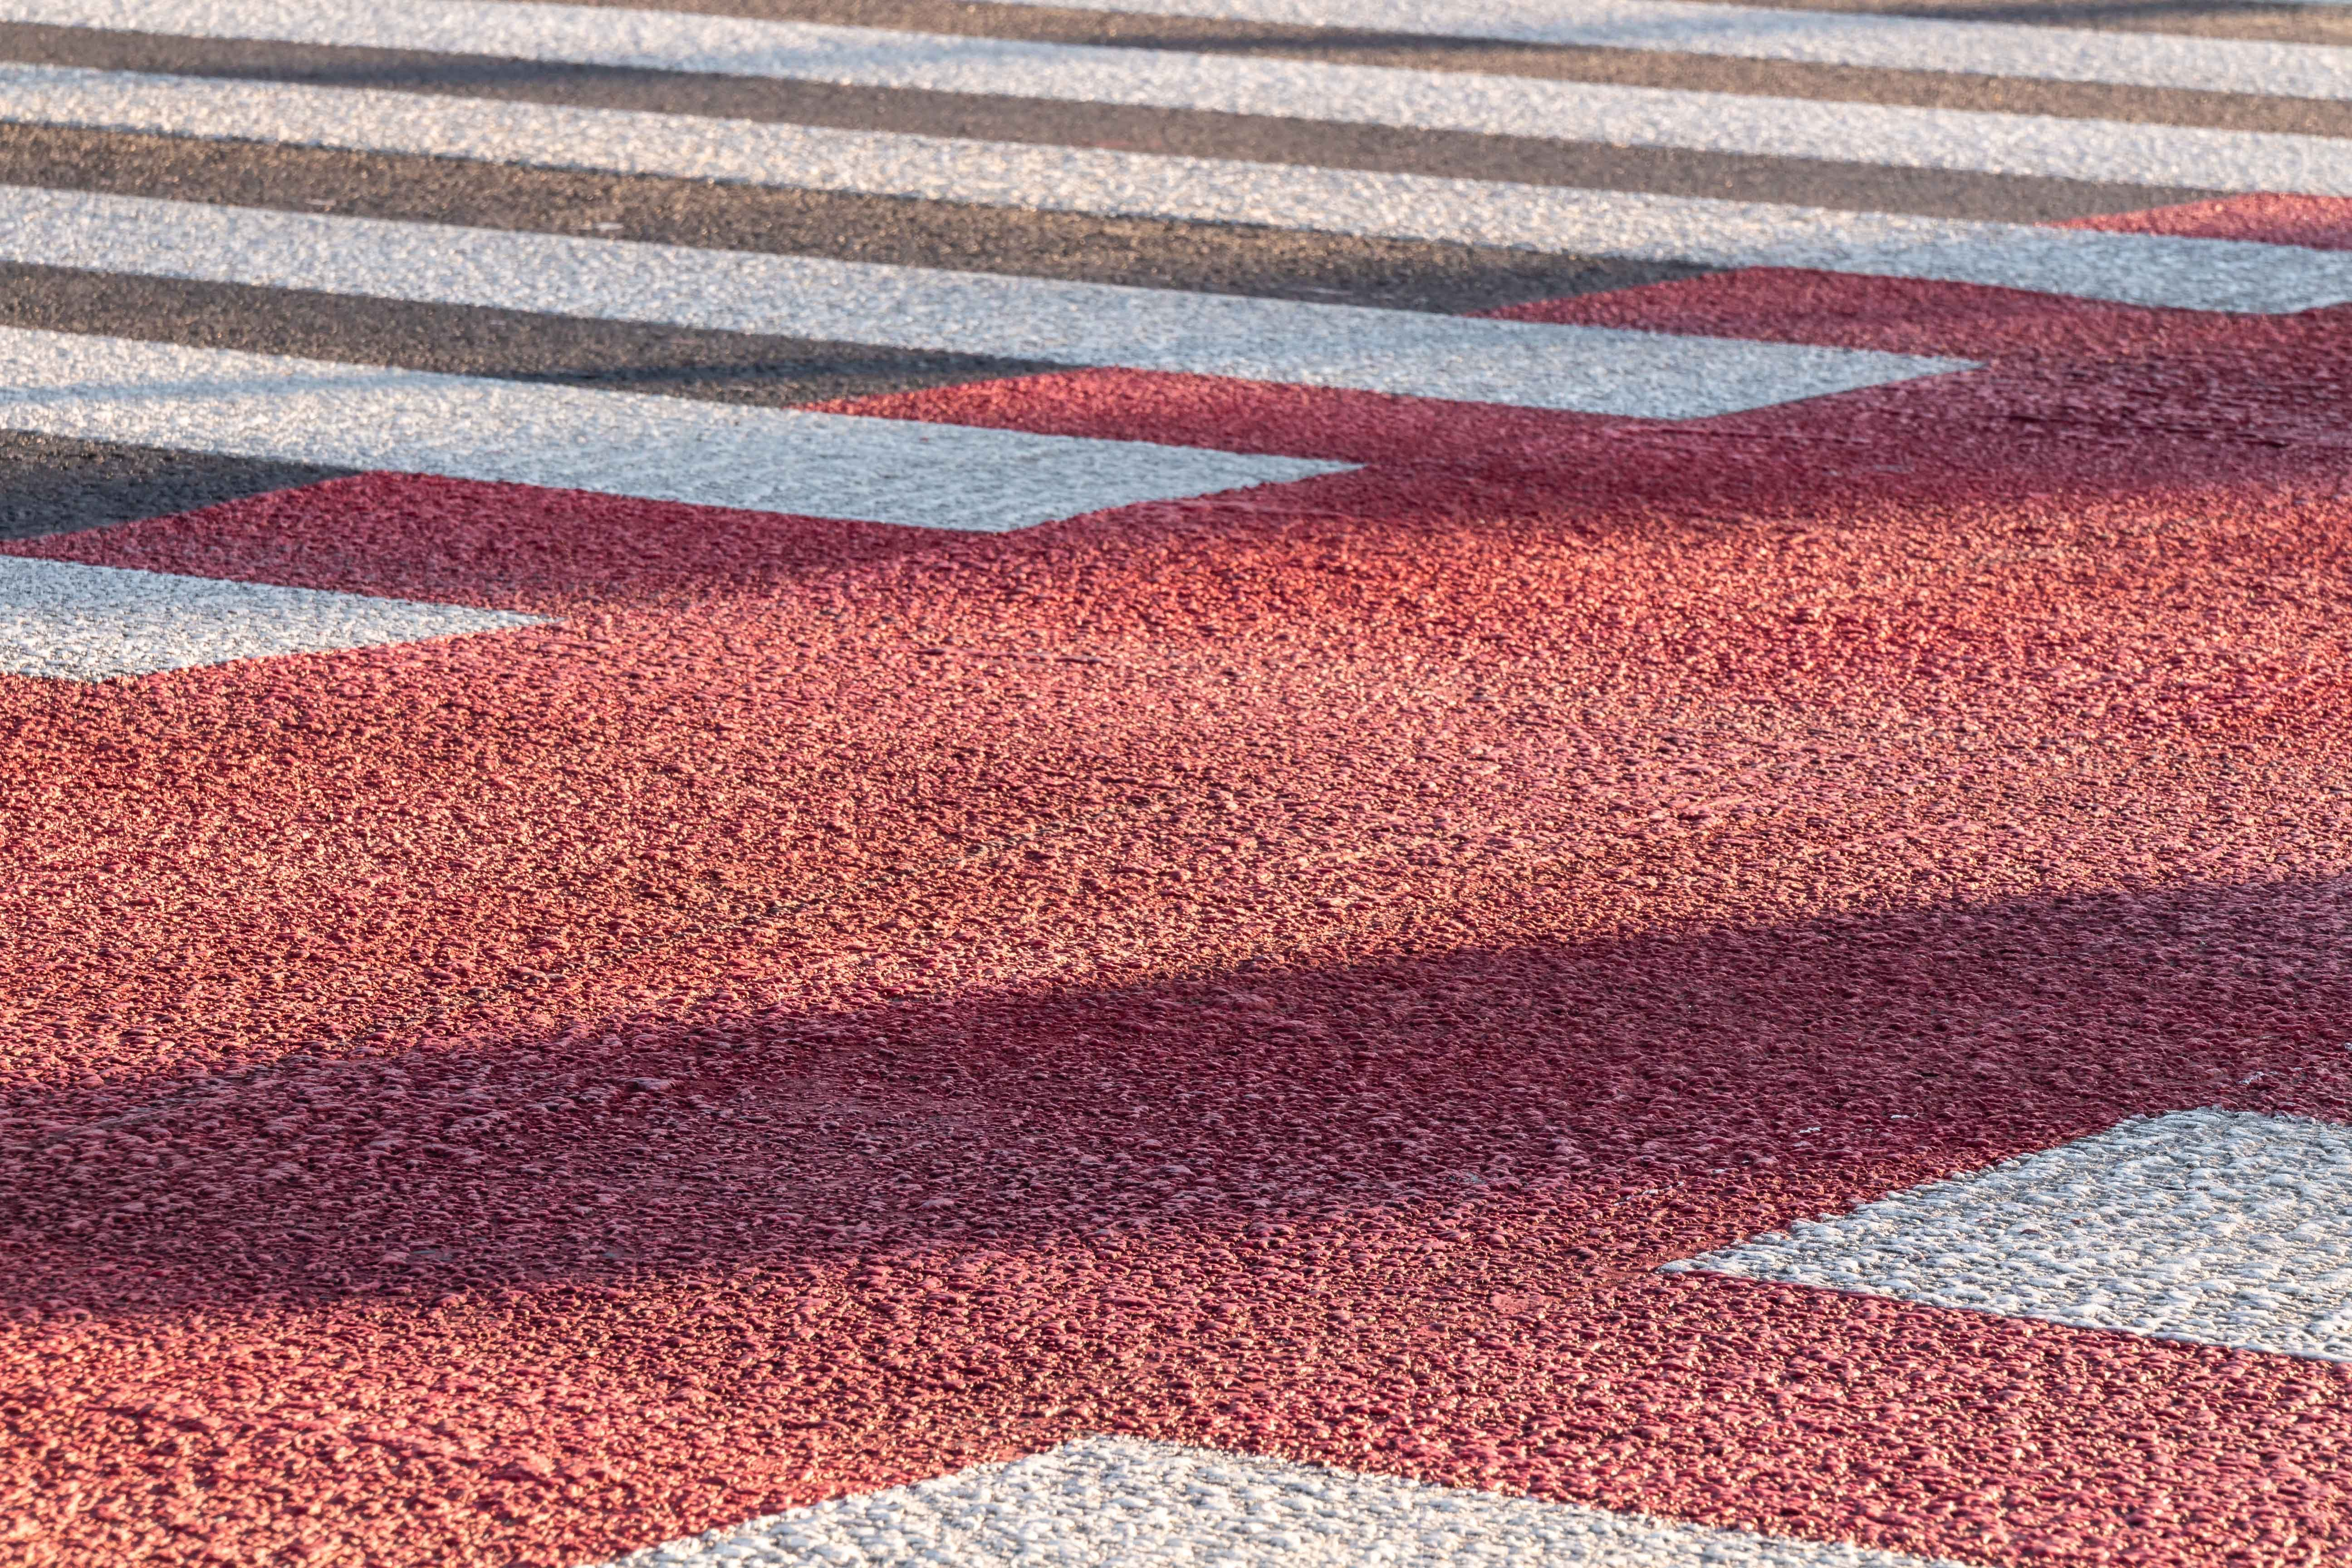 red and gray concrete roadway